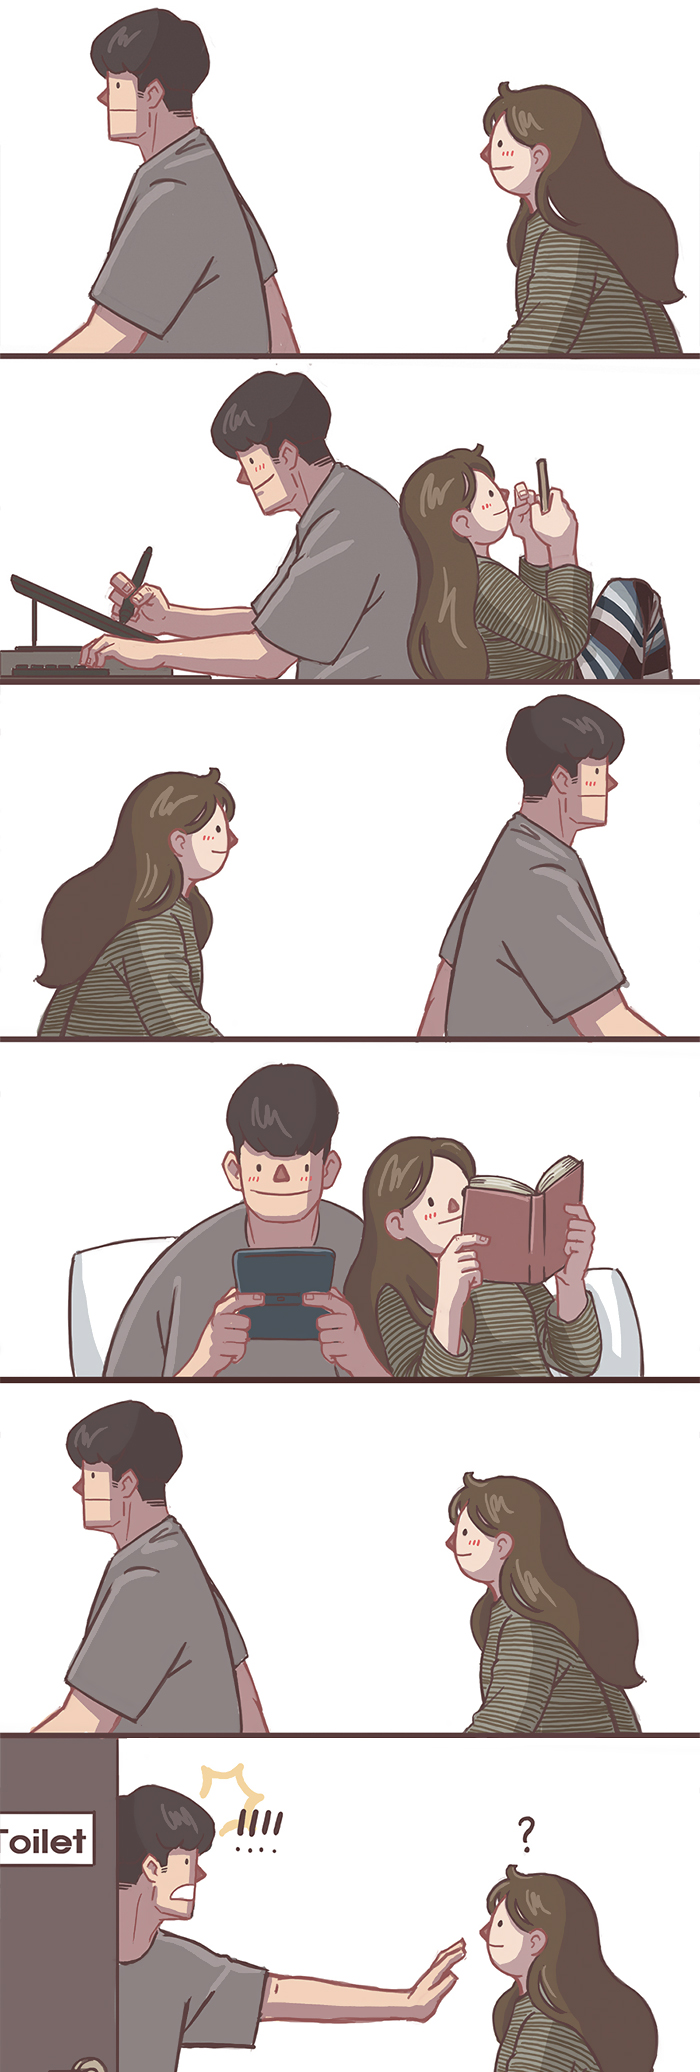 Girlfriend-Boyfriend-Relationship-Illustrations-Gyungstudio